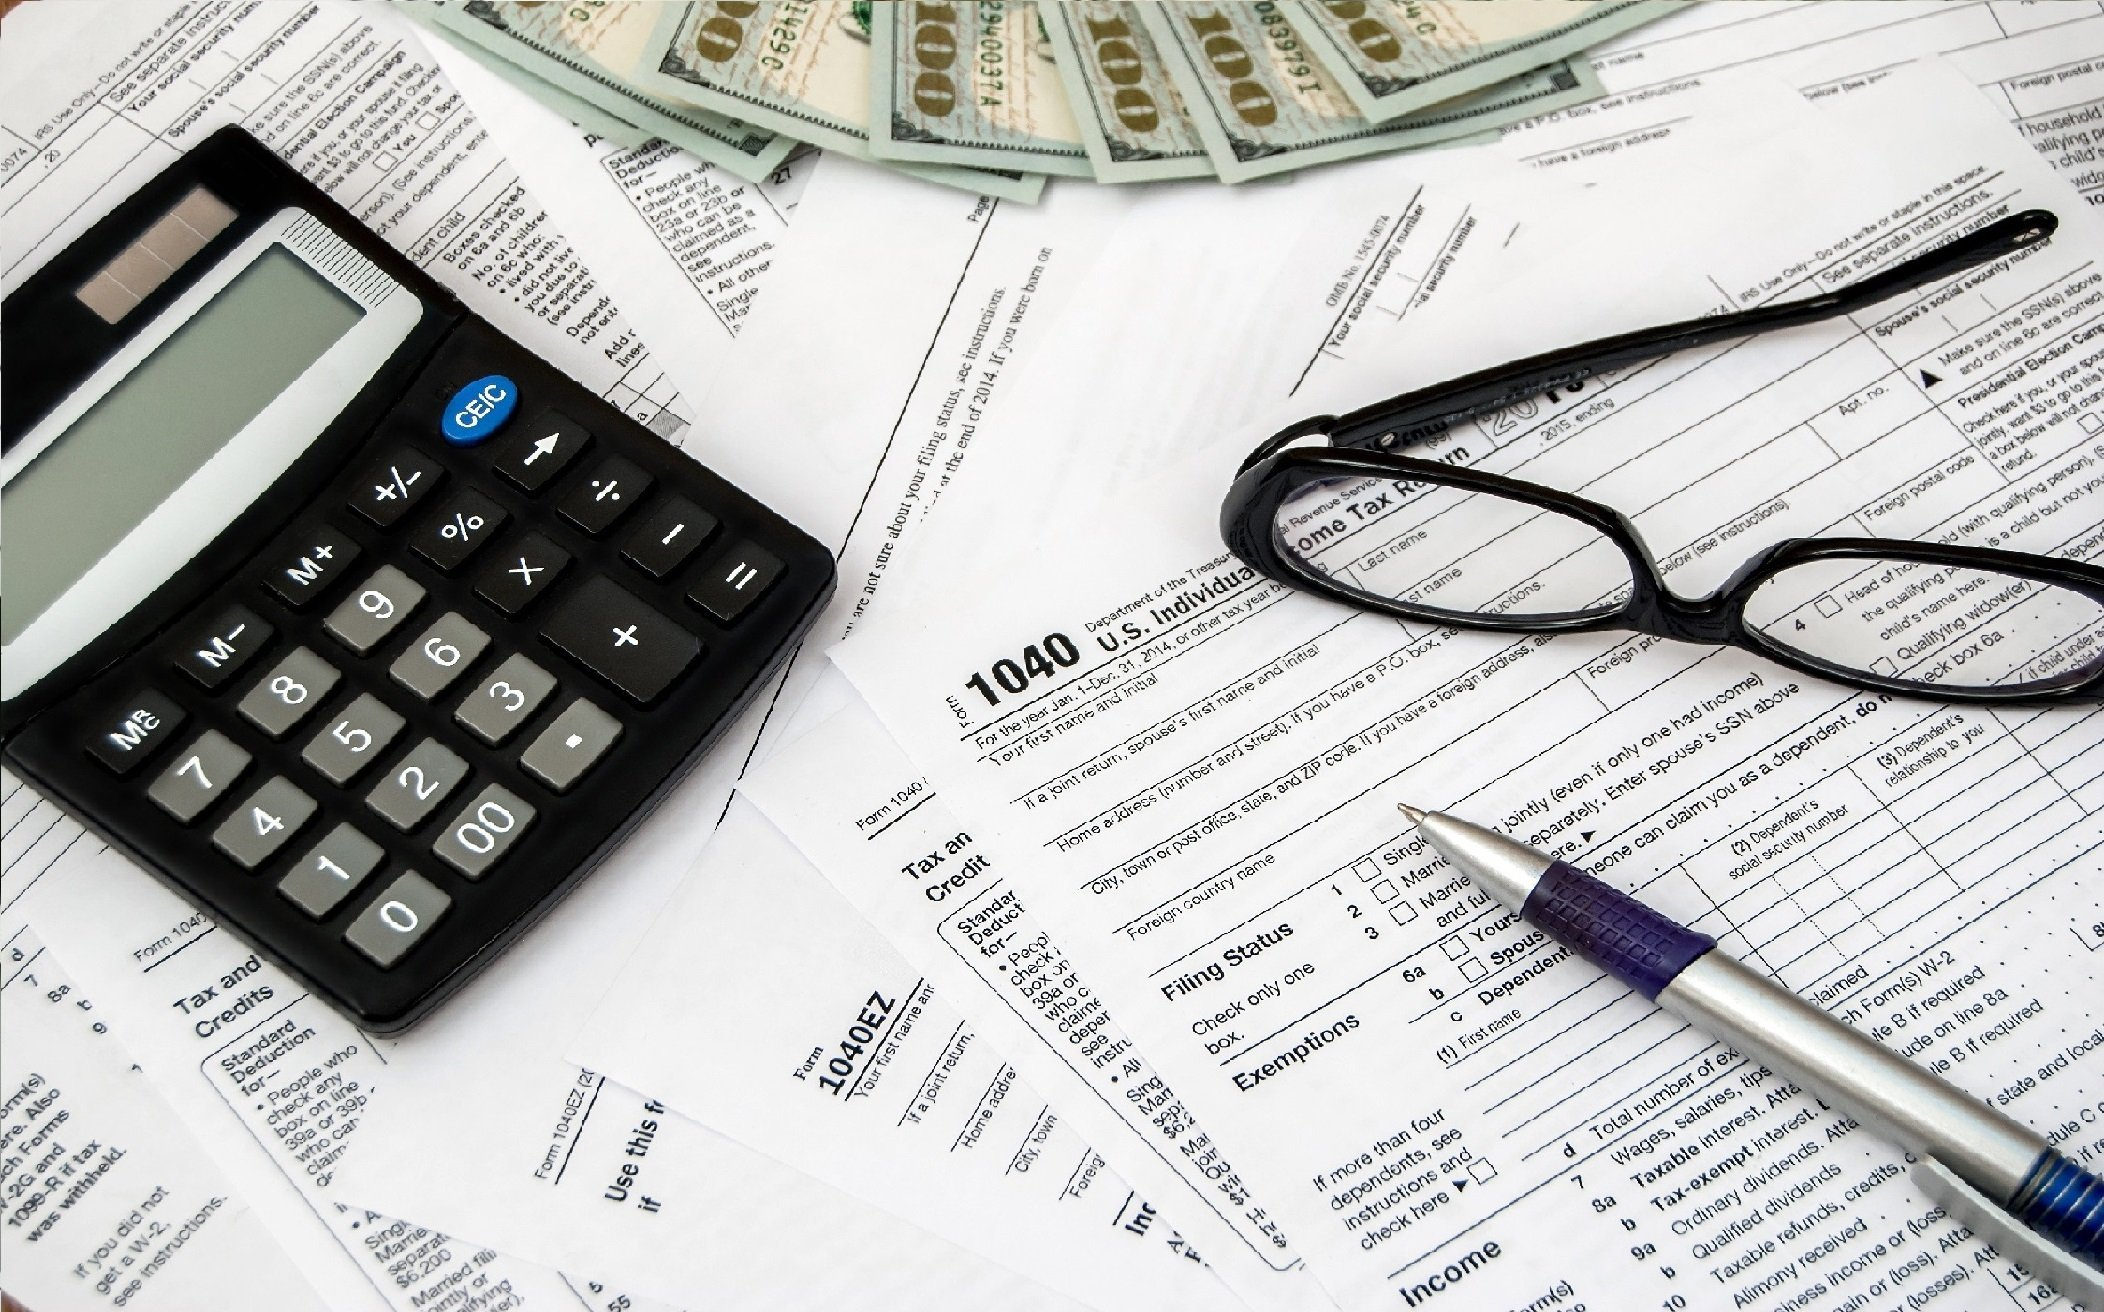 About self-employed health insurance deduction